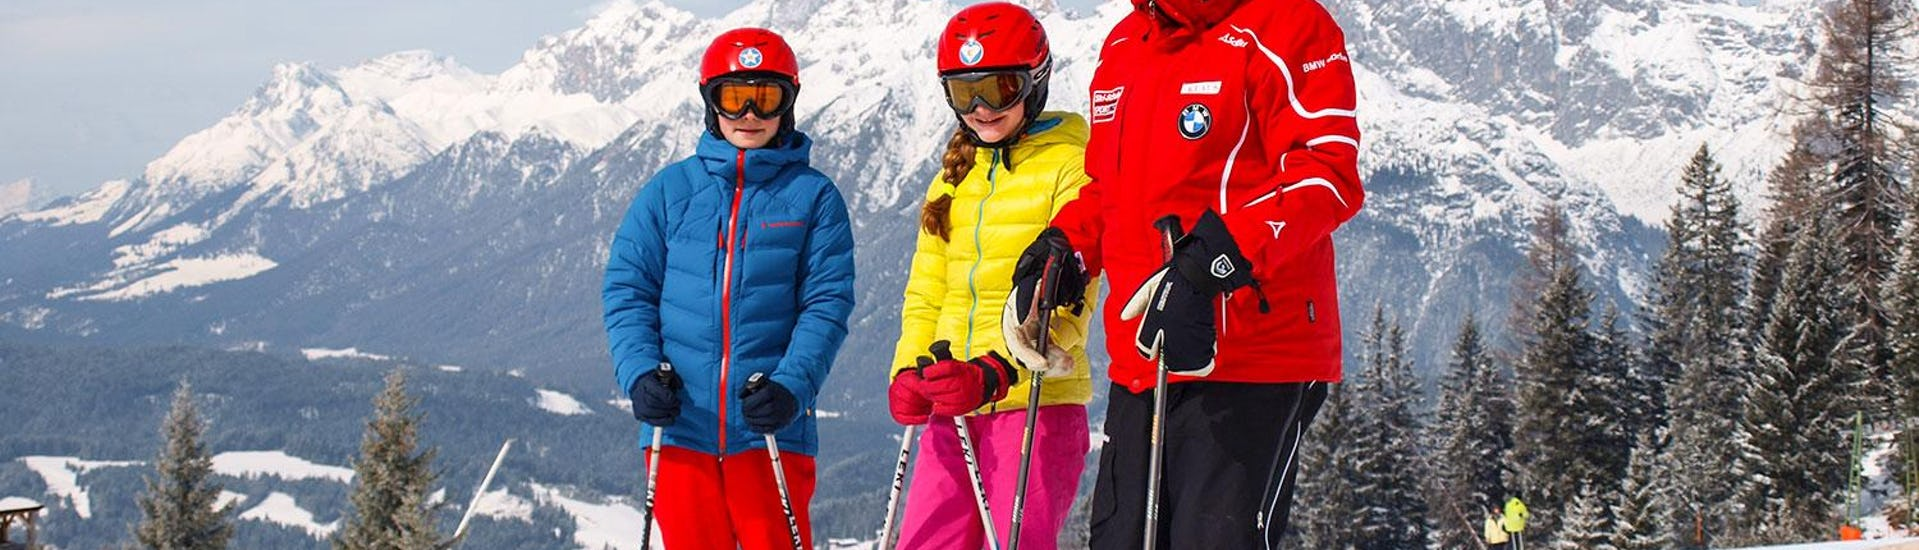 Ski instructor with two teenagers at the slope with mountains at the background